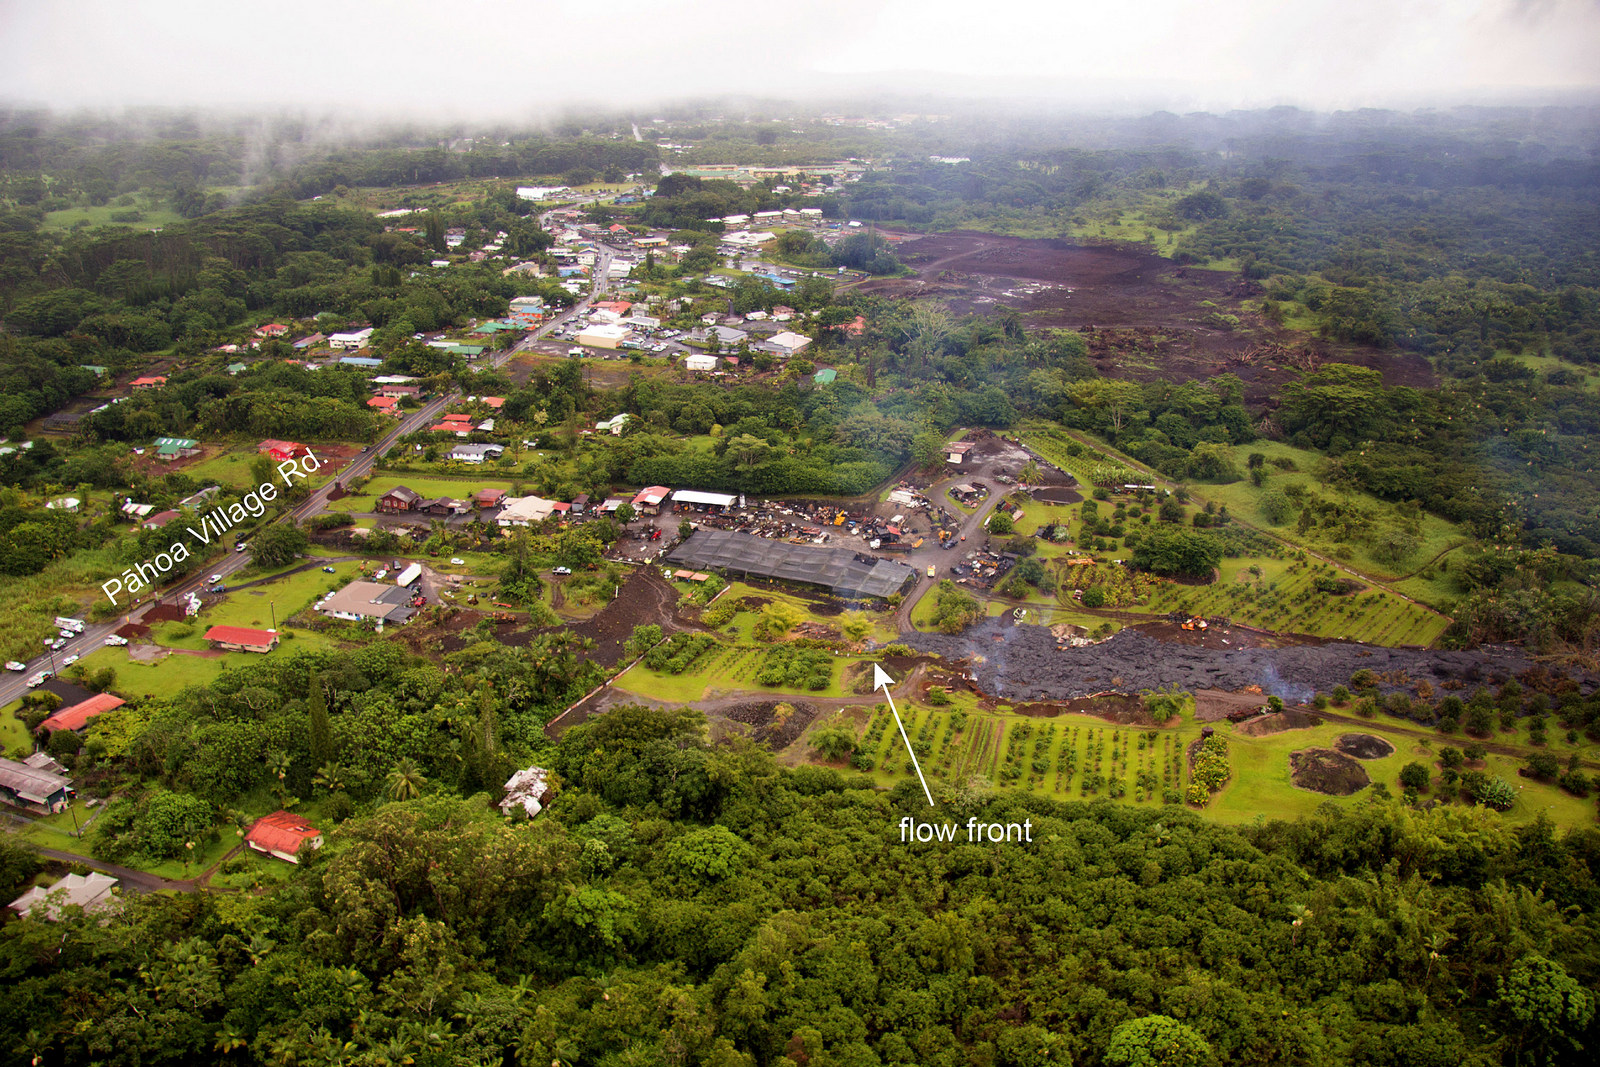 """Arial of Lava flow approaching the road. There is a label with arrows pointing to """"flow front."""" And a lable for """"Pahoa Village Road. The flow front is approaching the road."""